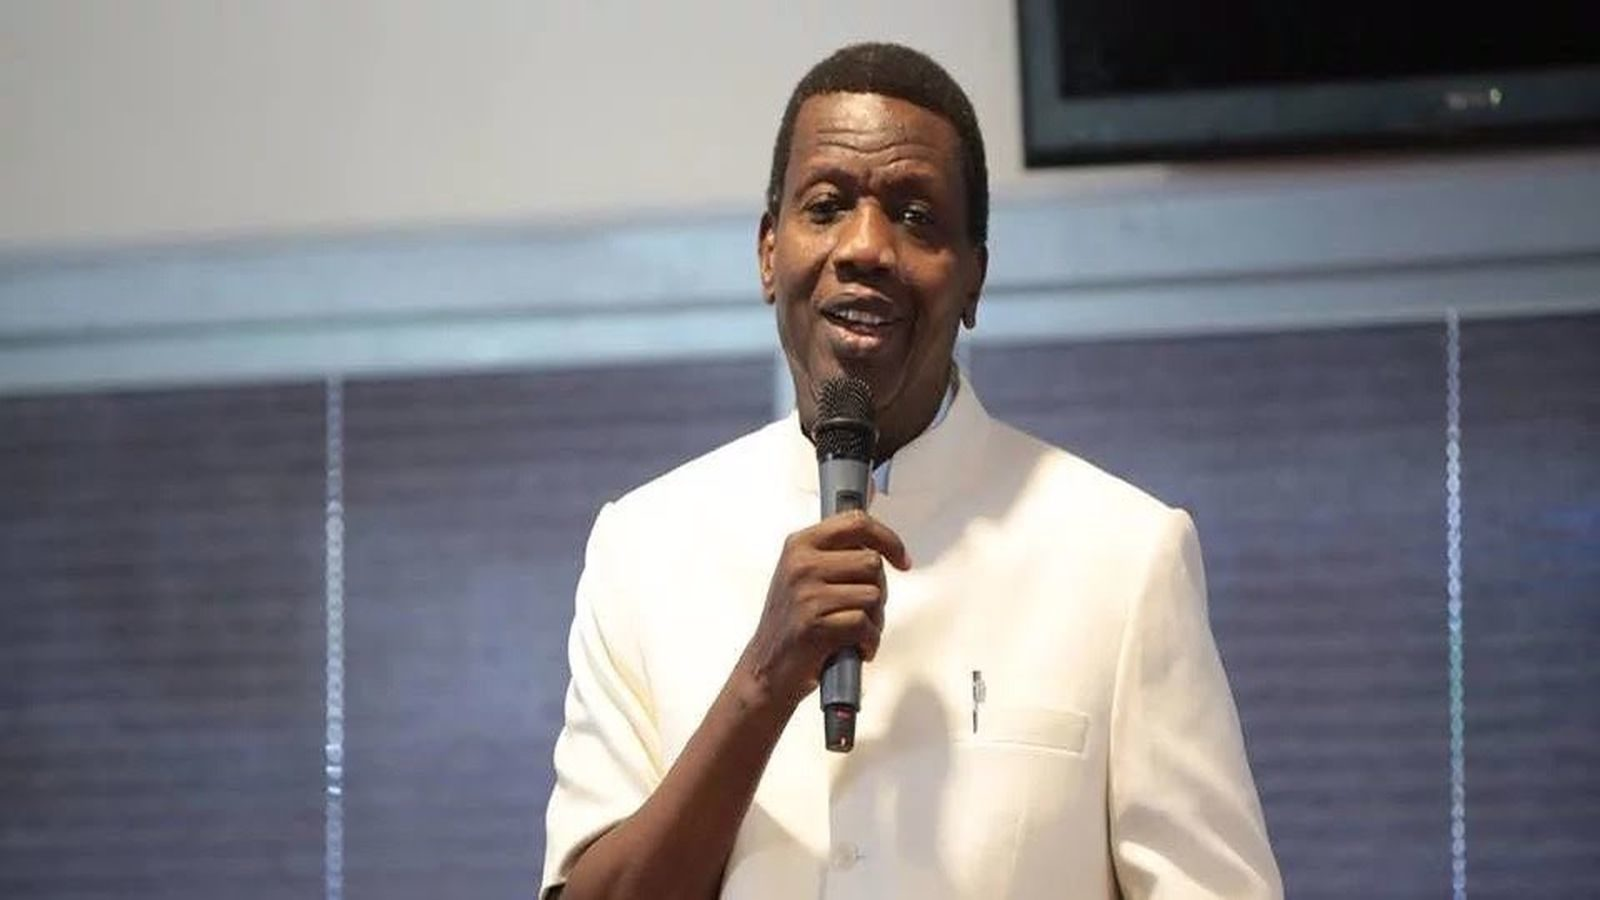 The General Overseer of the Redeemed Christian Church of God (RCCG), Pastor Enoch Adeboye, says he and his prayer warriors will not rest in prayer until the